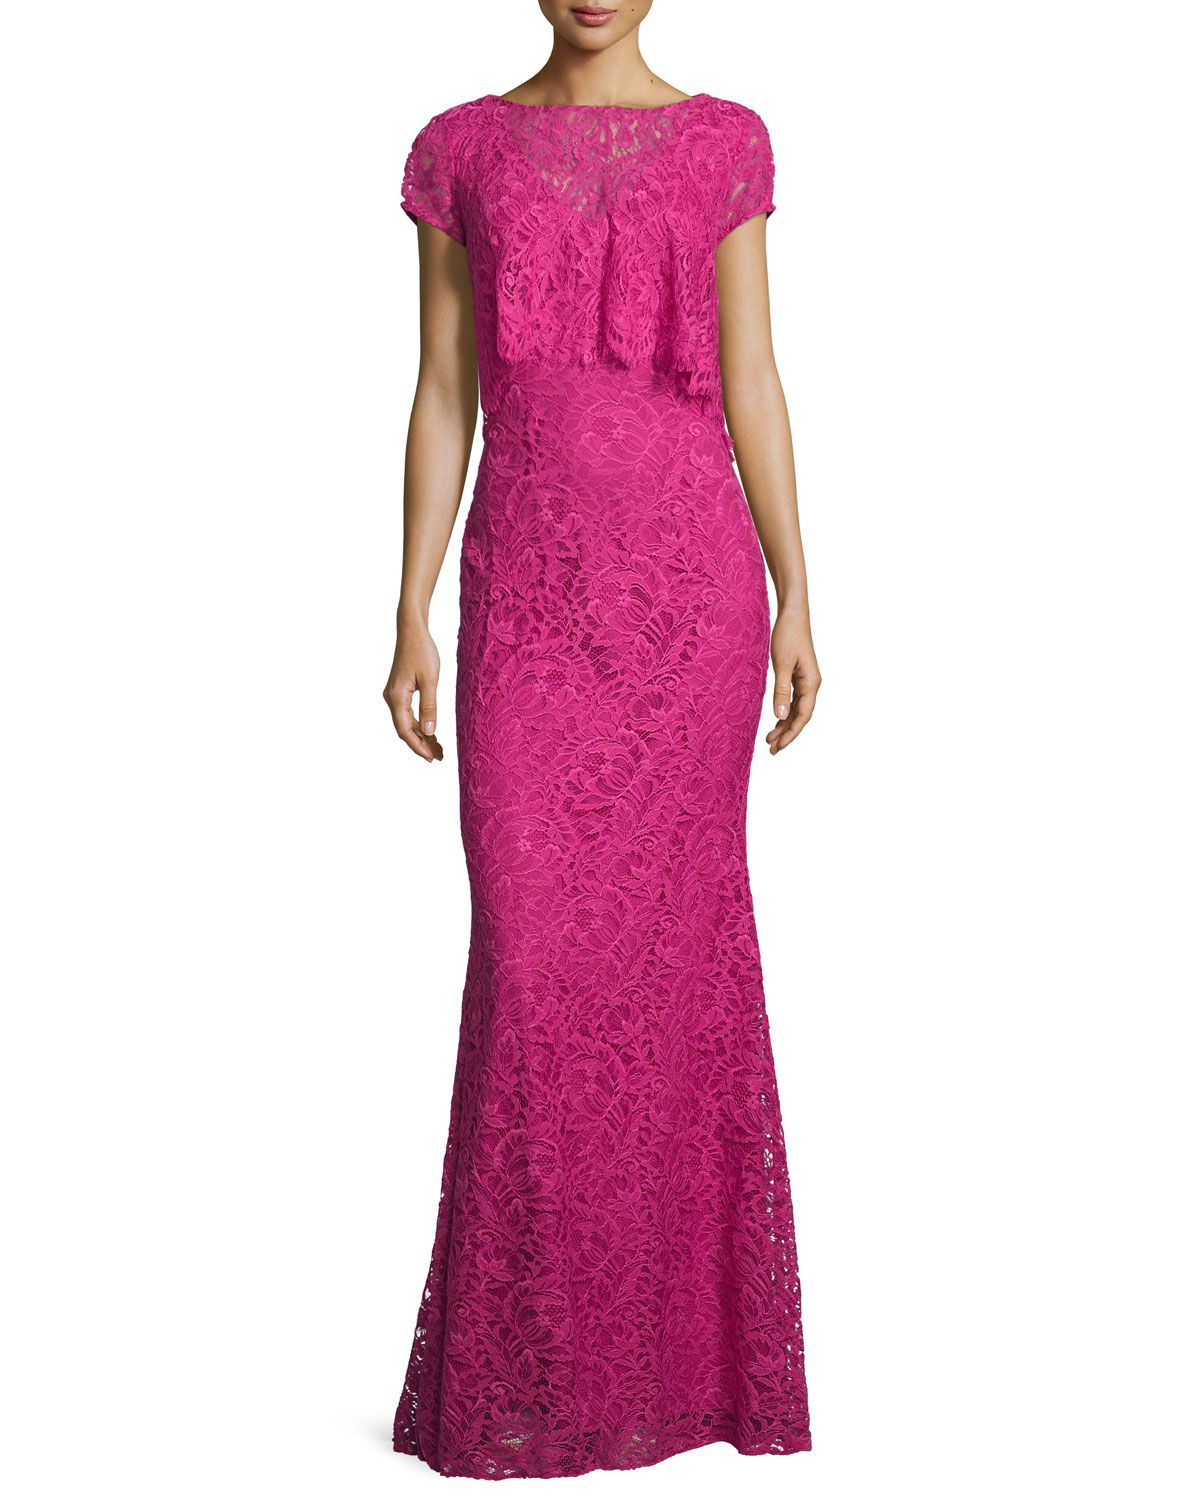 Cap-Sleeve Popover Lace Gown, Passion Fruit, Women\'s, Size: 0 ...